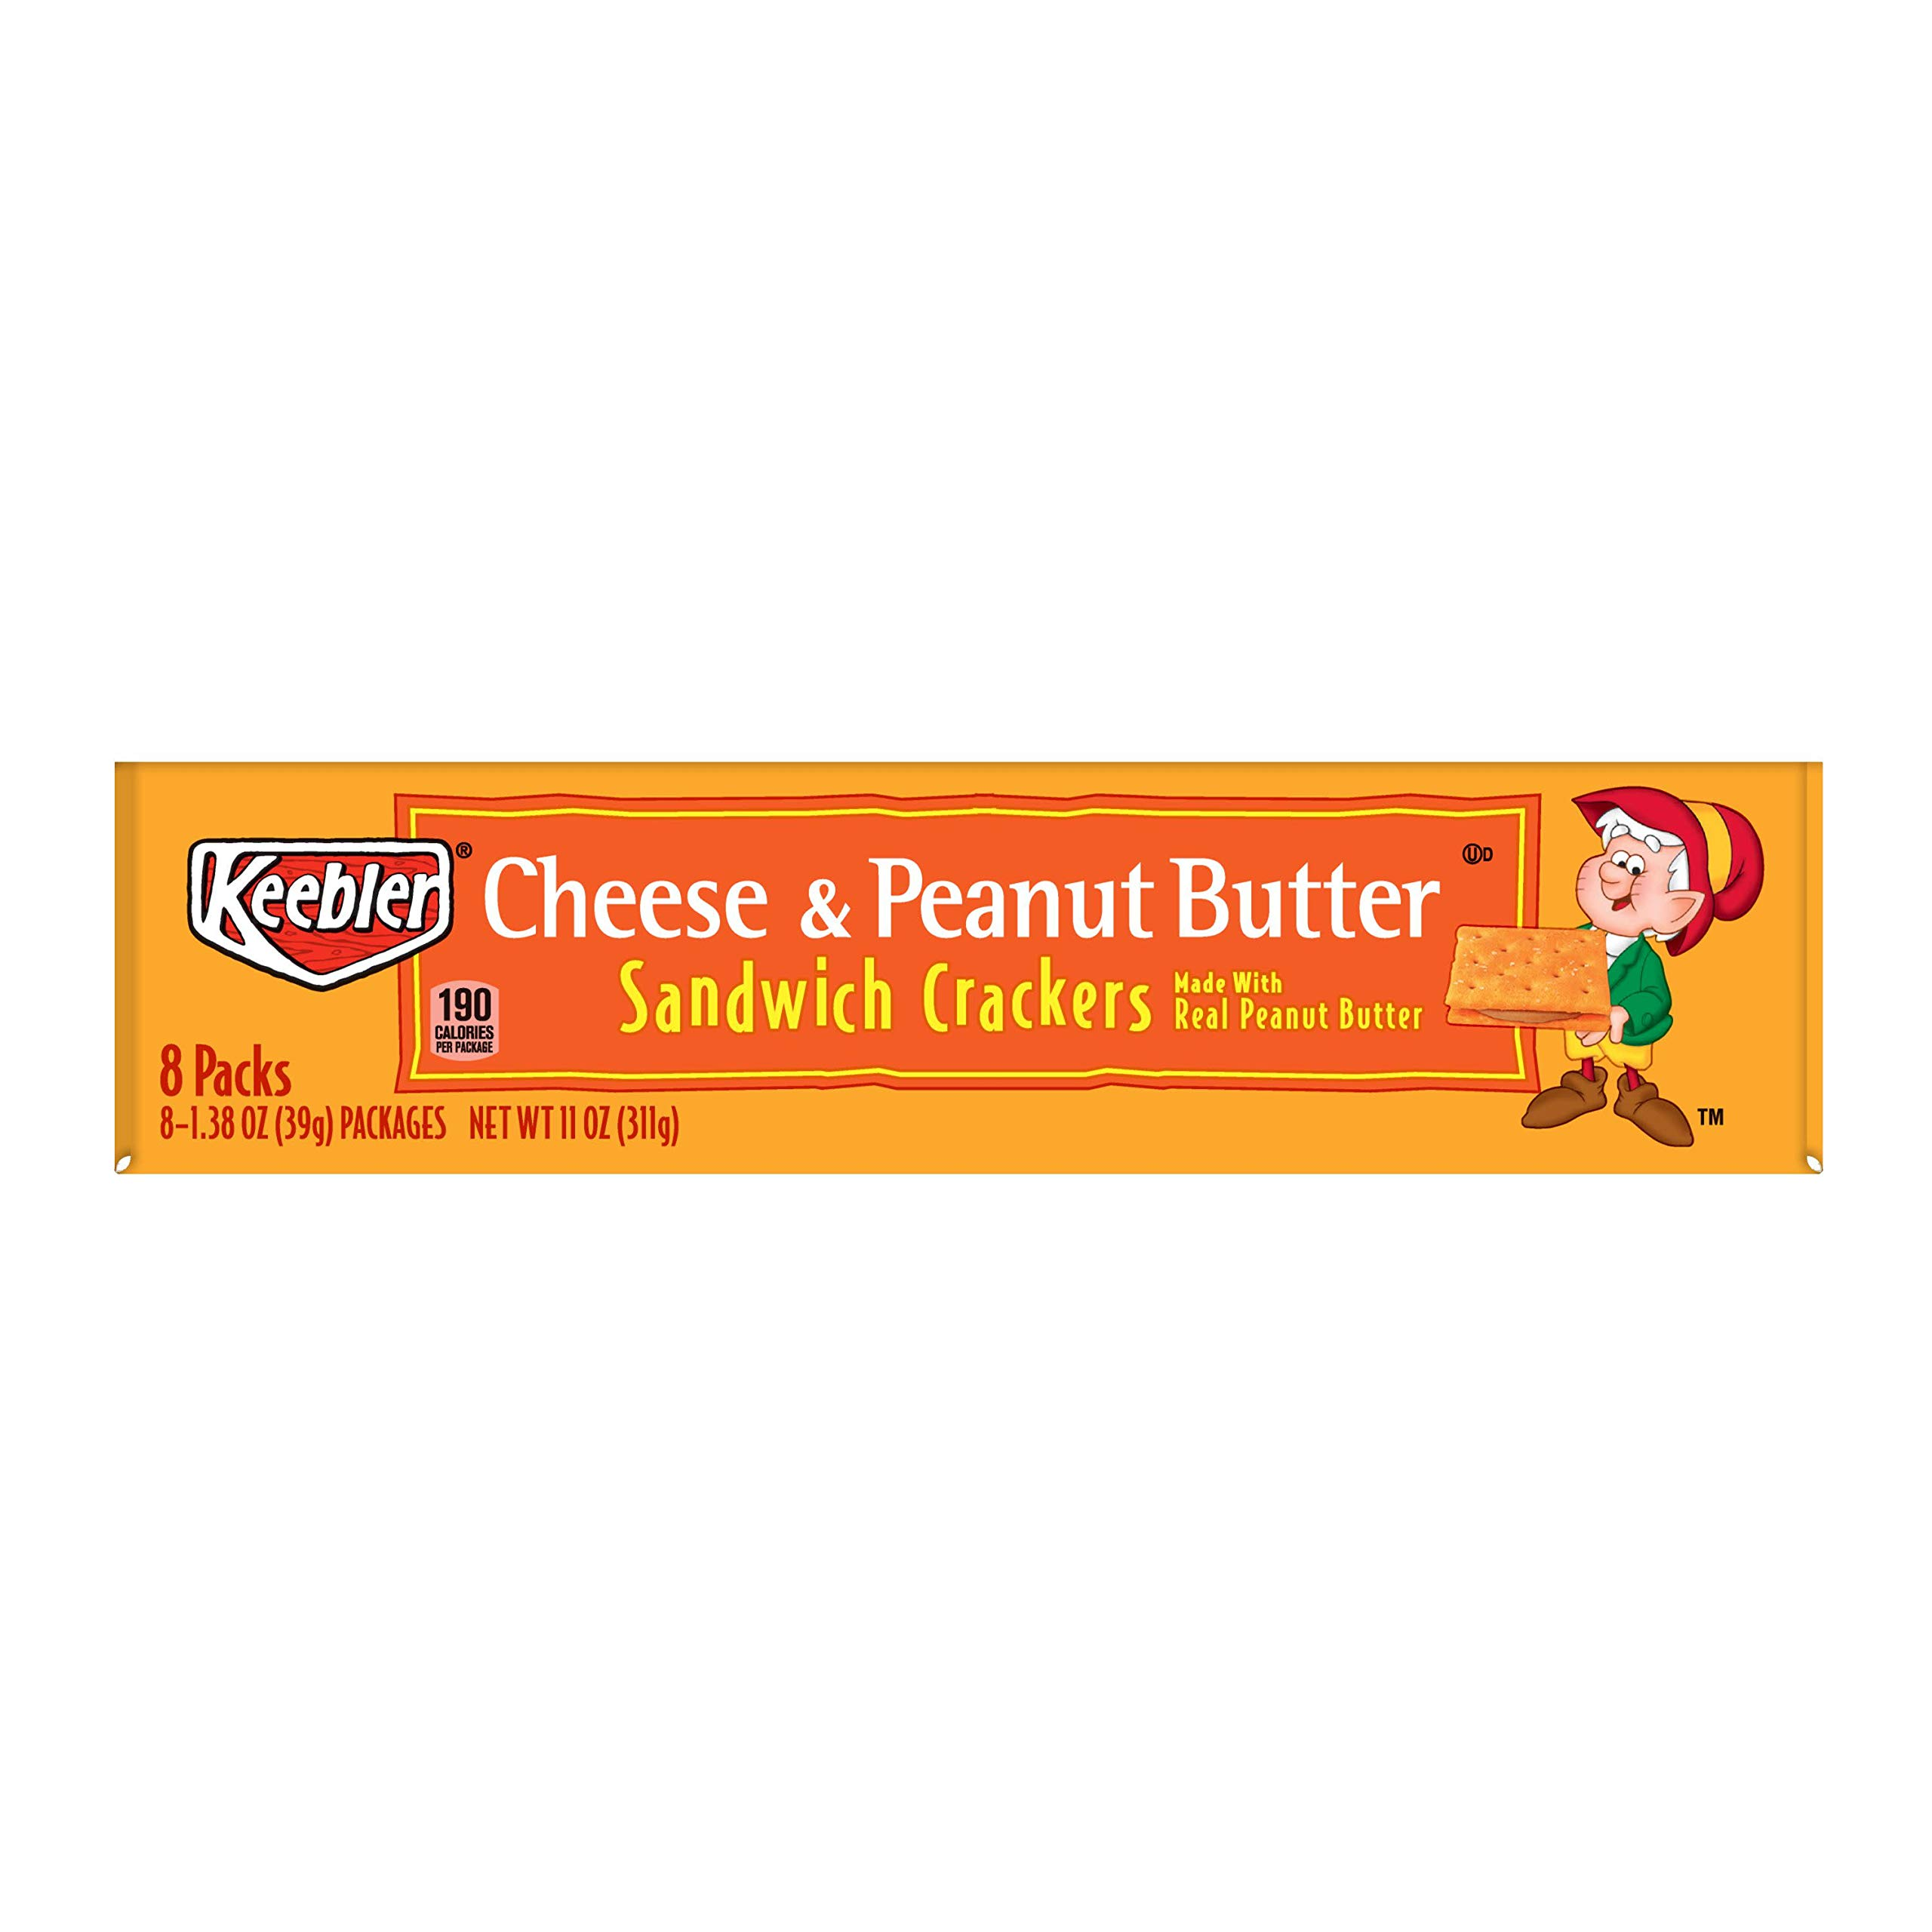 Keebler Cheese and Peanut Butter Sandwich Crackers, Single Serve, 1.38 oz Packages, 8 Count(Pack of 6) by Keebler Sandwich Crackers (Image #8)